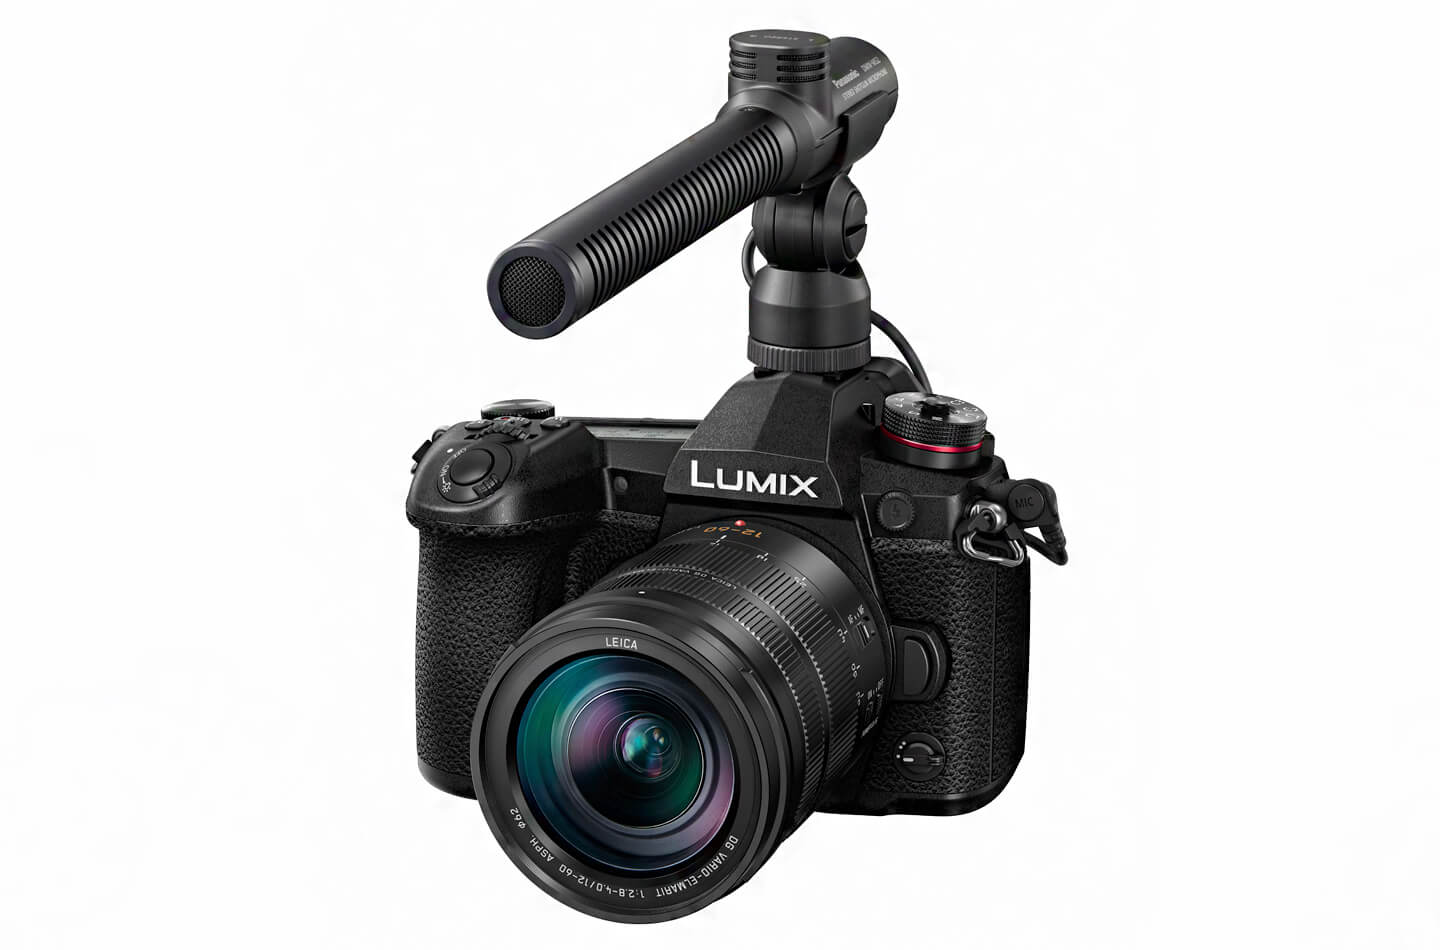 Panasonic Lumix G9 mirrorless camera for professionals